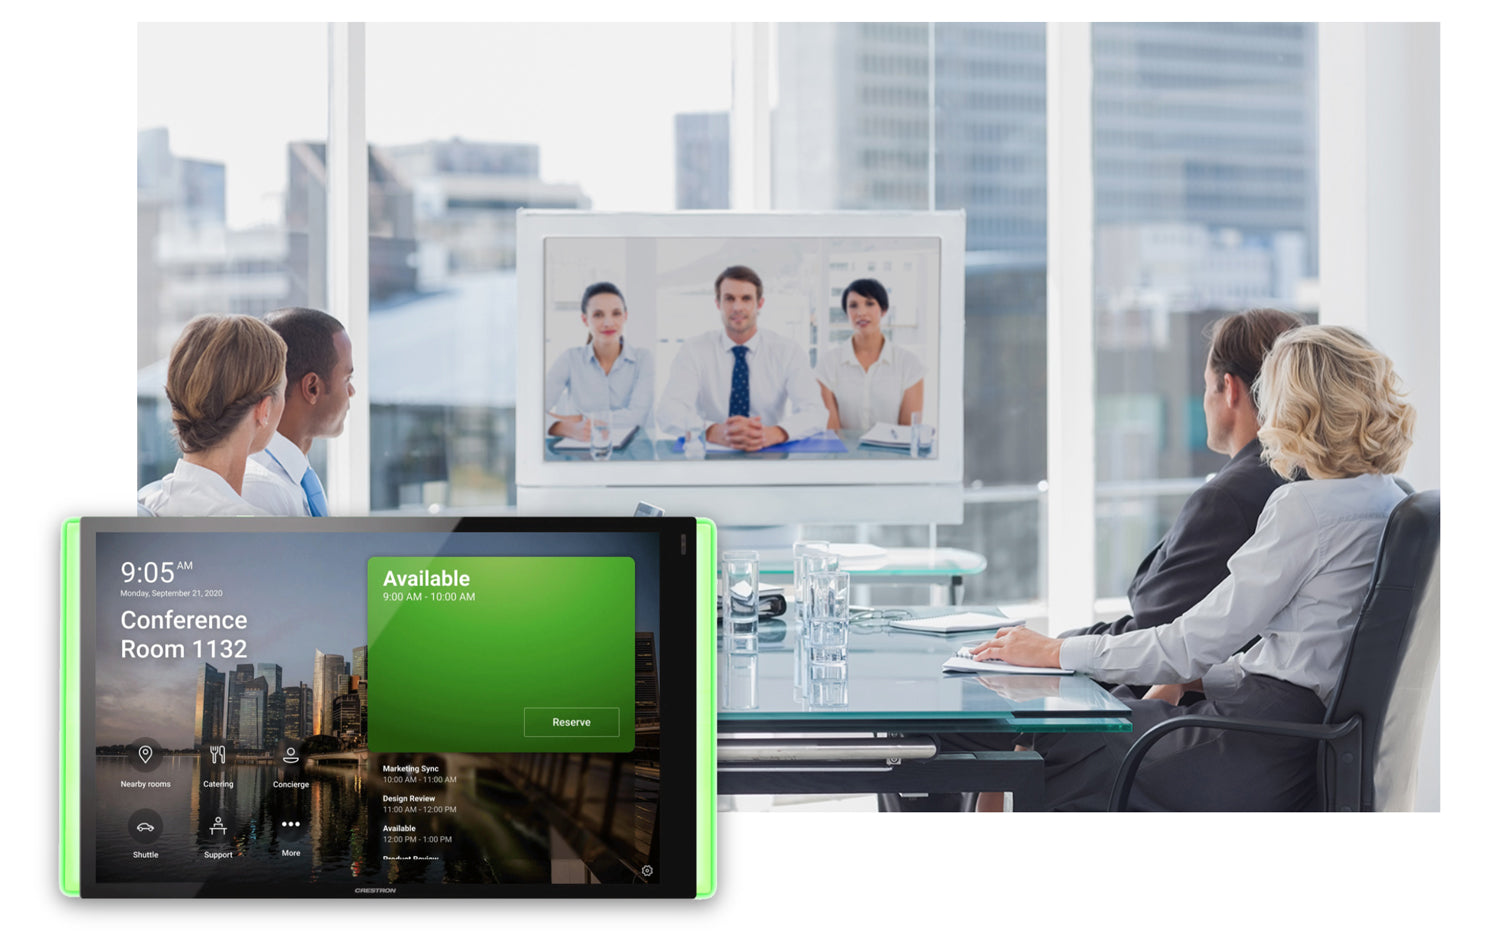 IT services for communication in video conferencing room